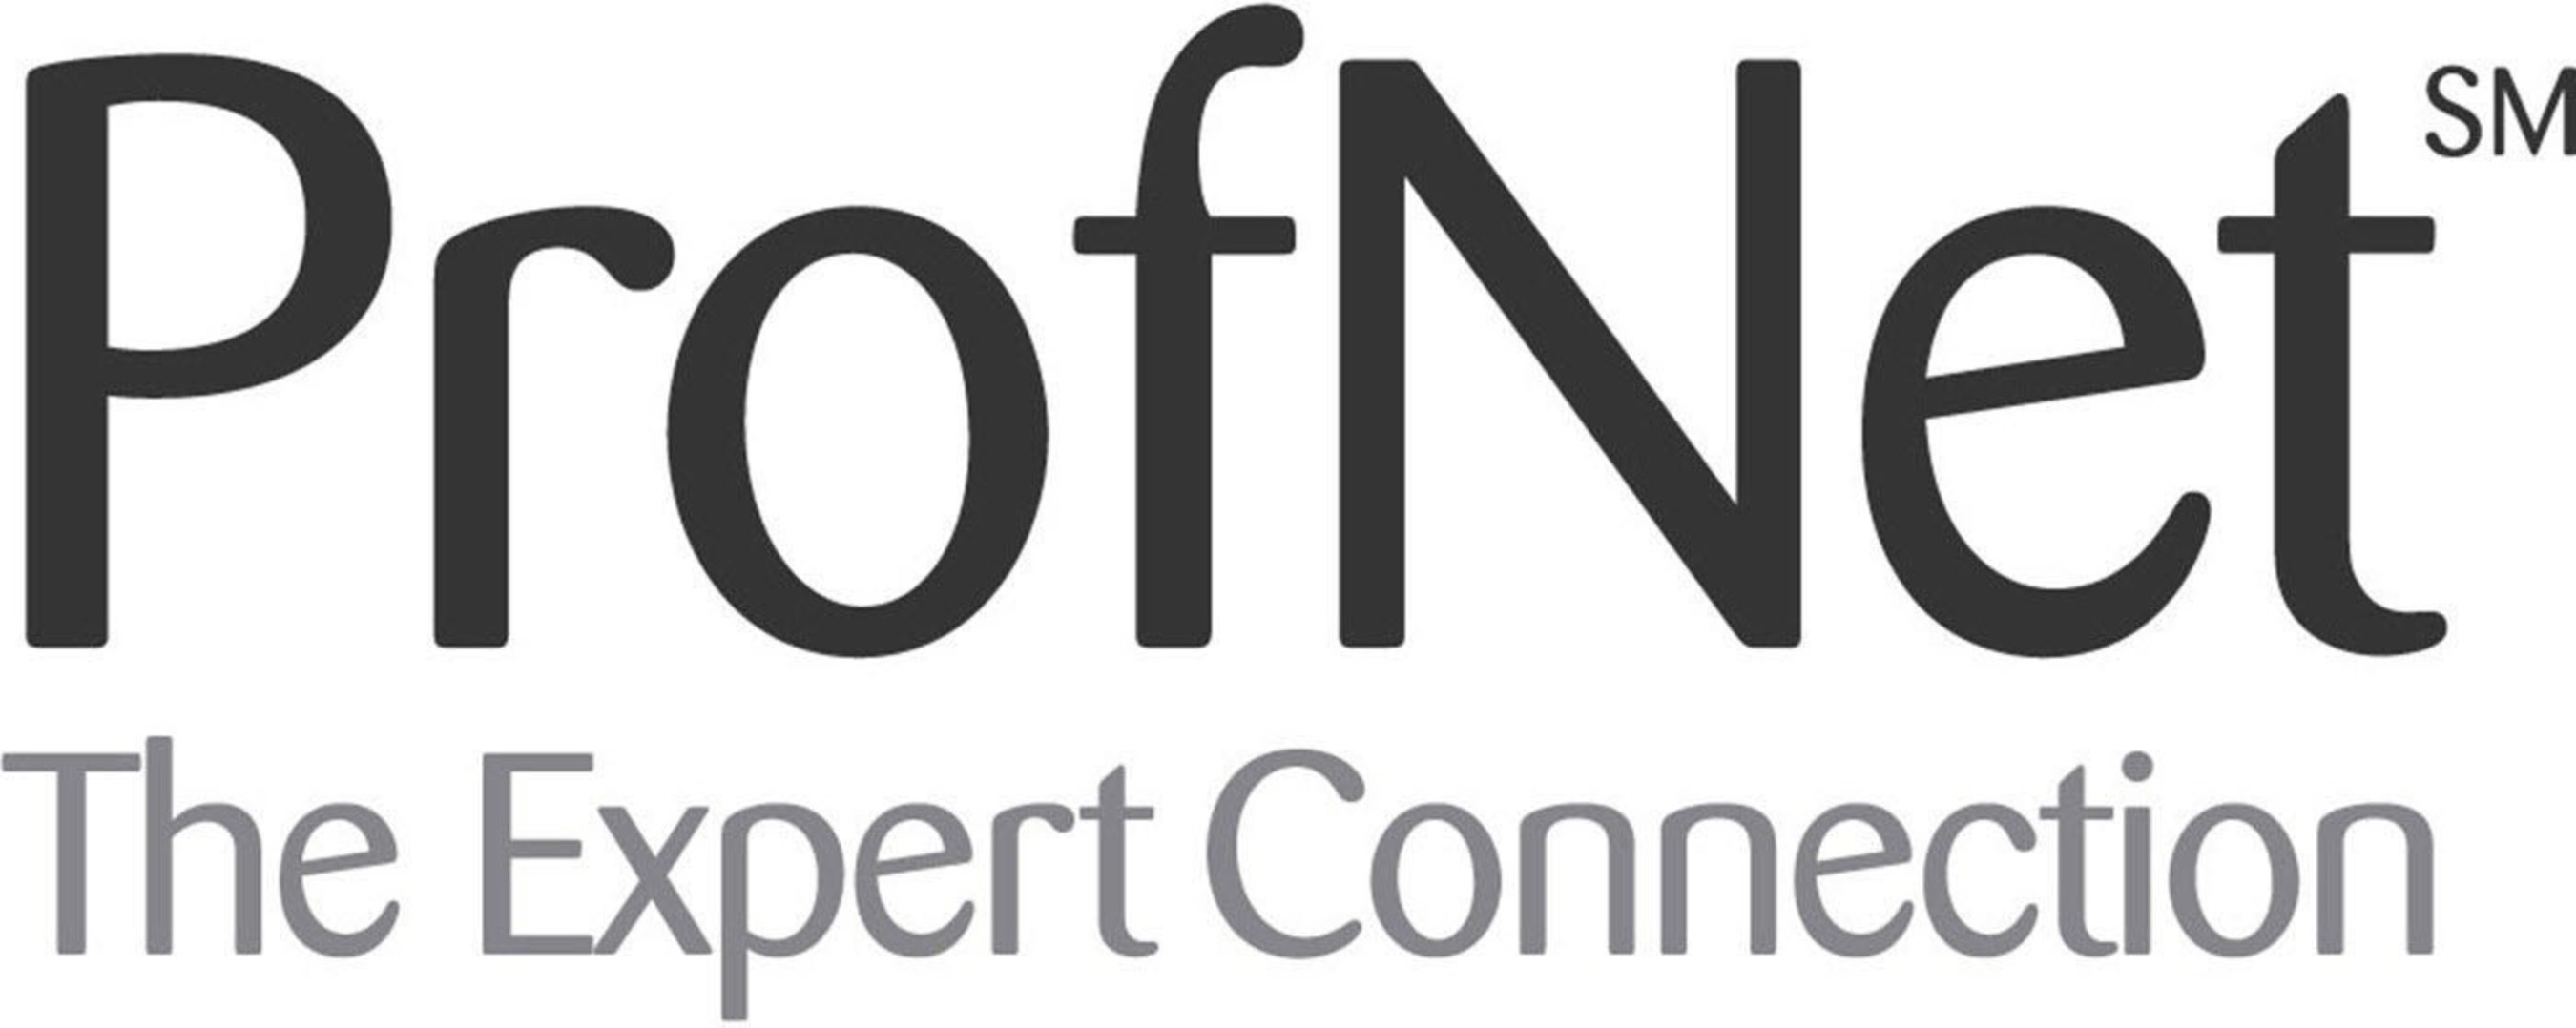 ProfNet is a service that connects journalists with subject matter experts. Find out more at  http://www.profnet.com .